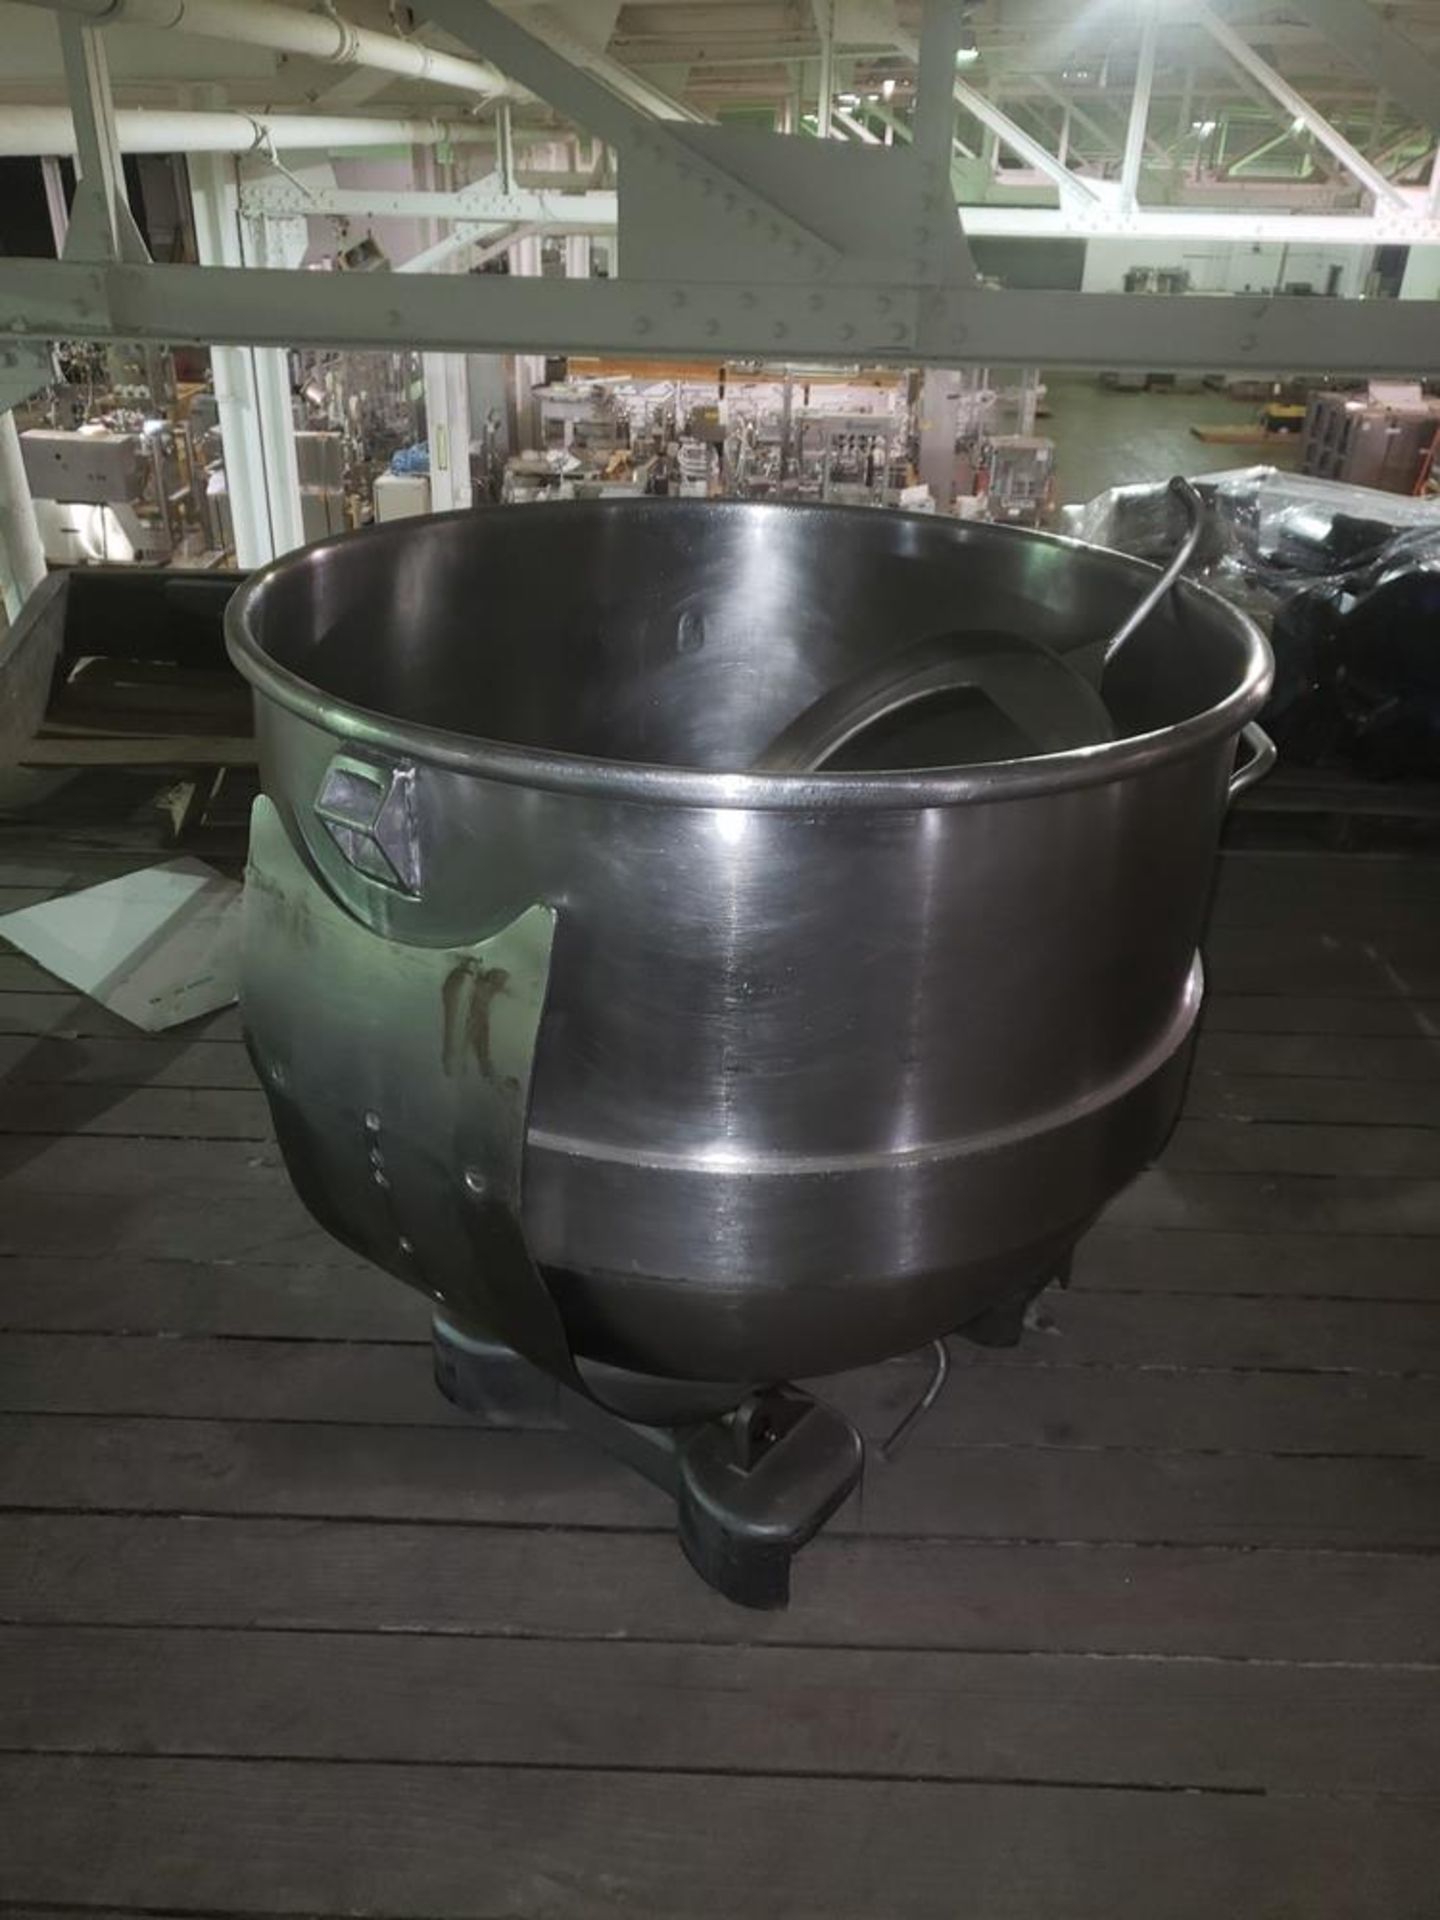 Lot 3 - S/S mixing bowl for AMF Mixer